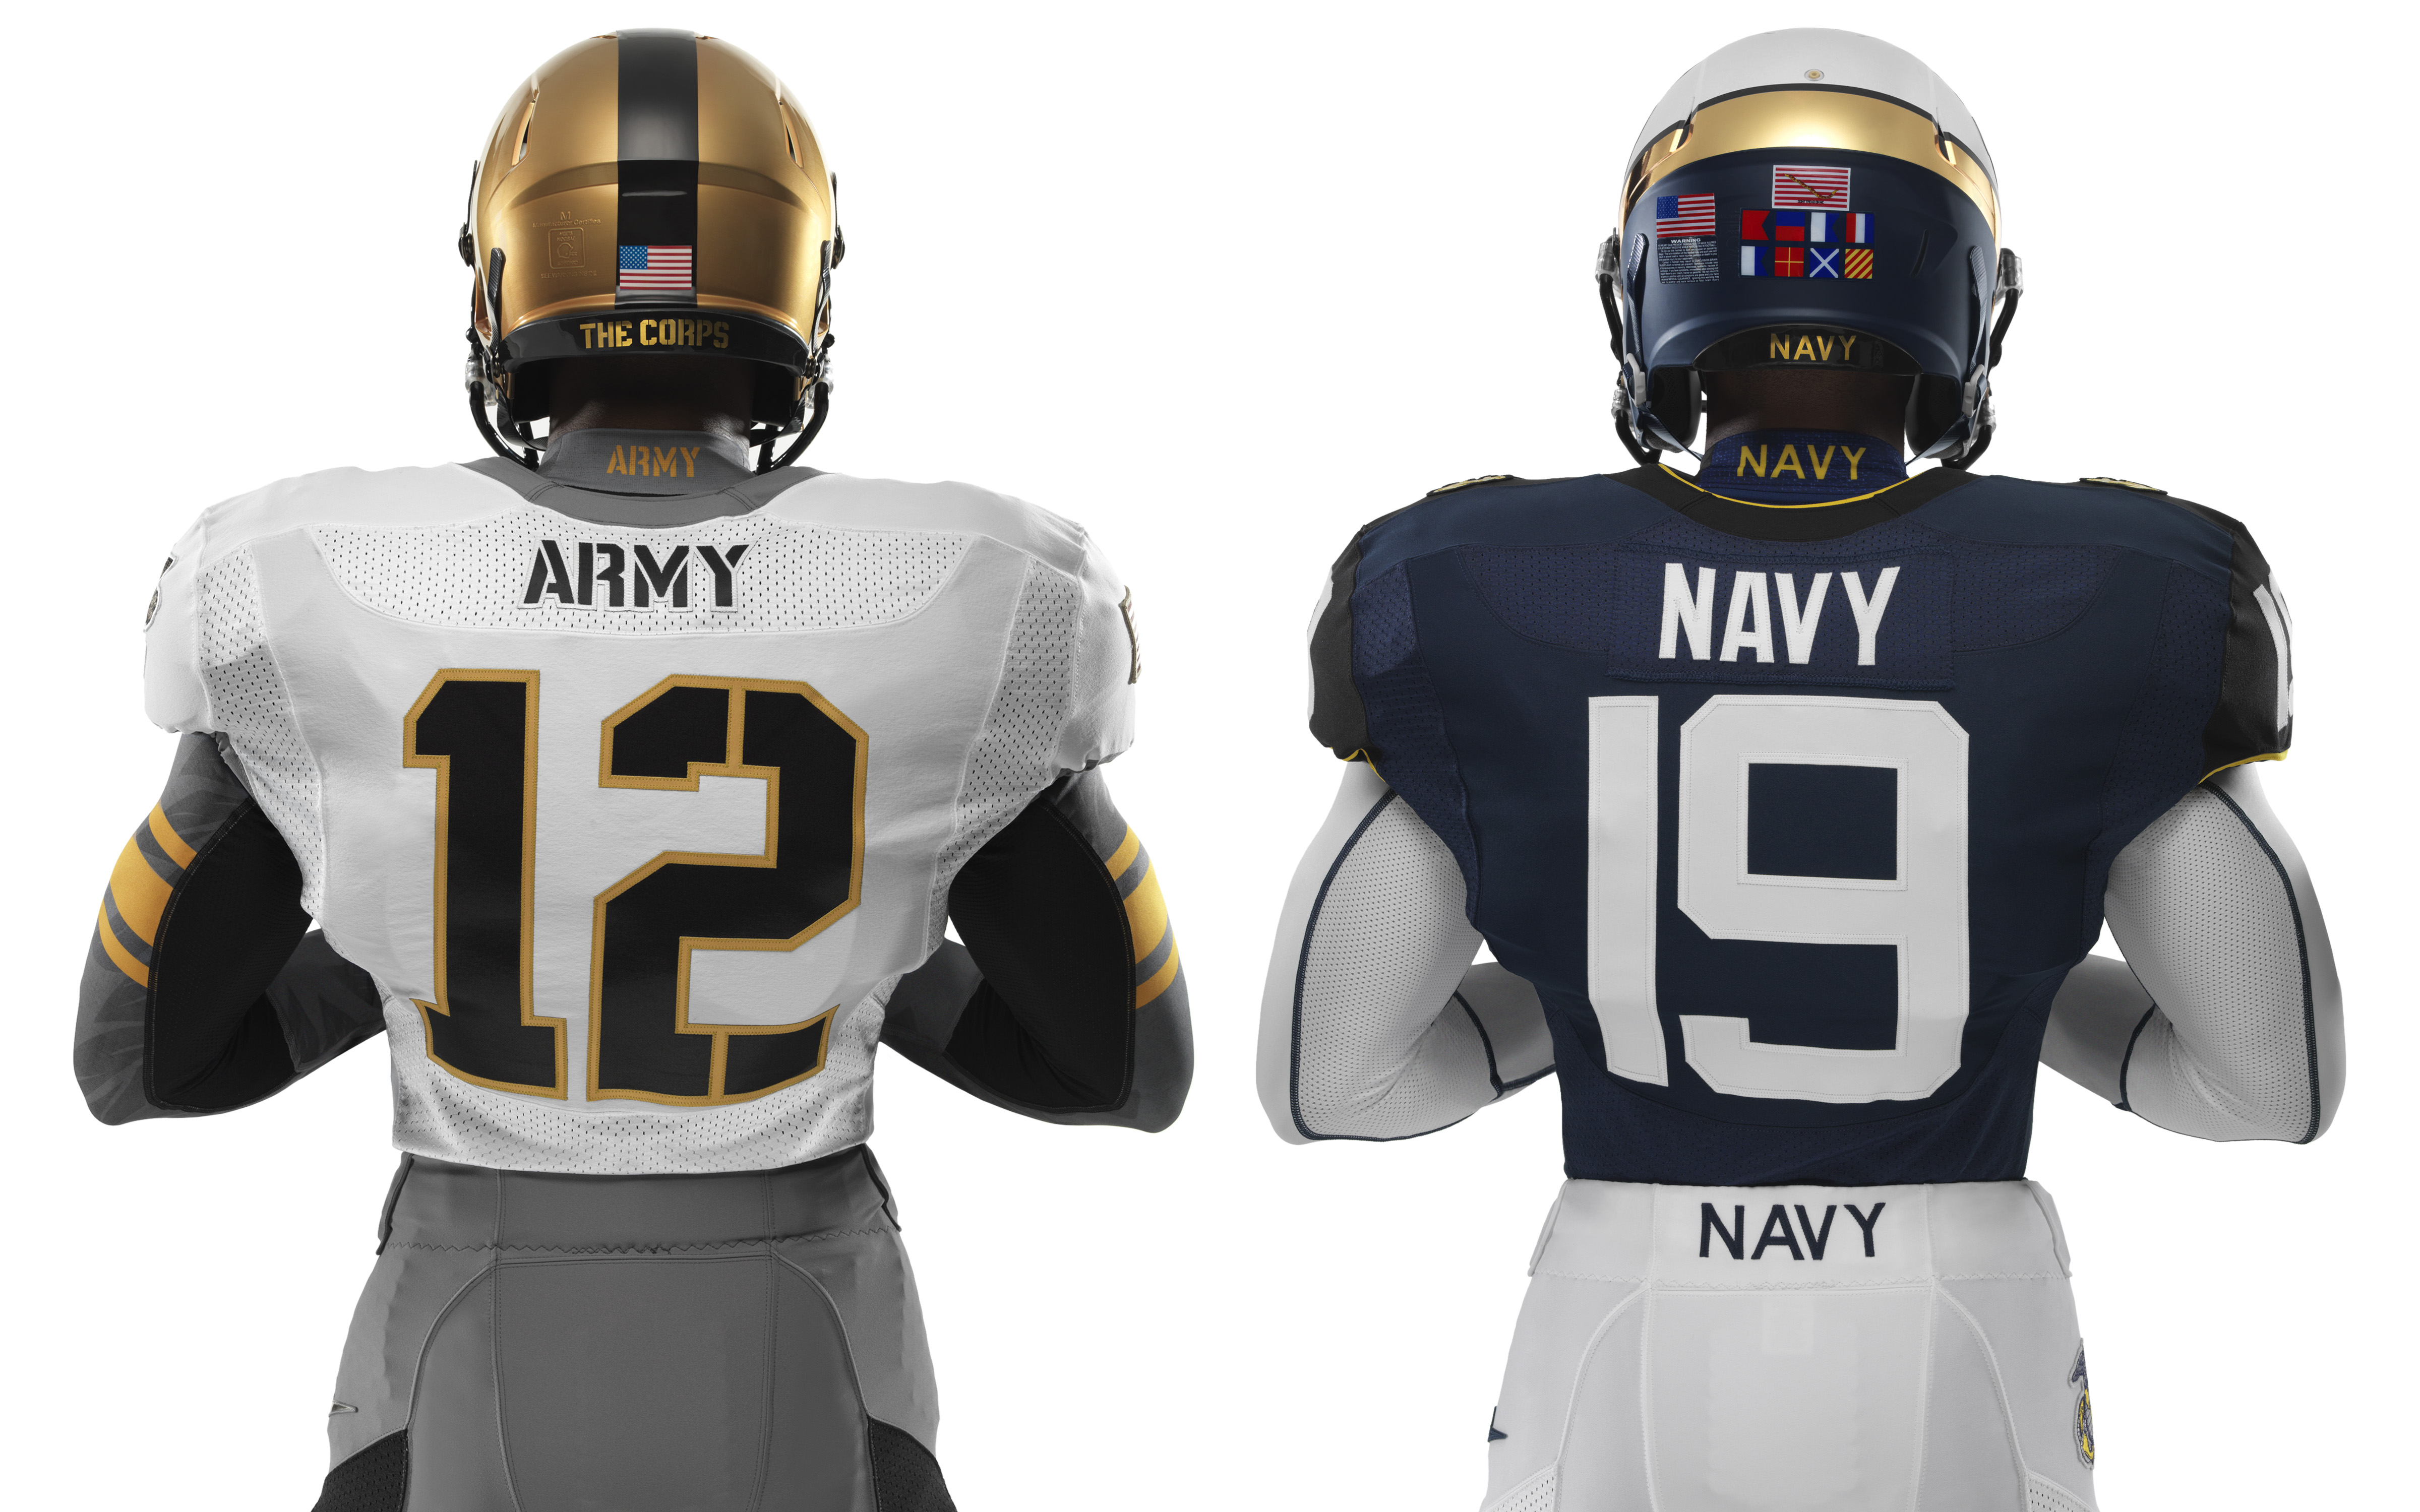 Navy Vs Army Football 2017 New Upcoming Cars 2019 2020 2014 Nissan Nv Stereo Wiring Diagram And Nike Uniforms For 114th